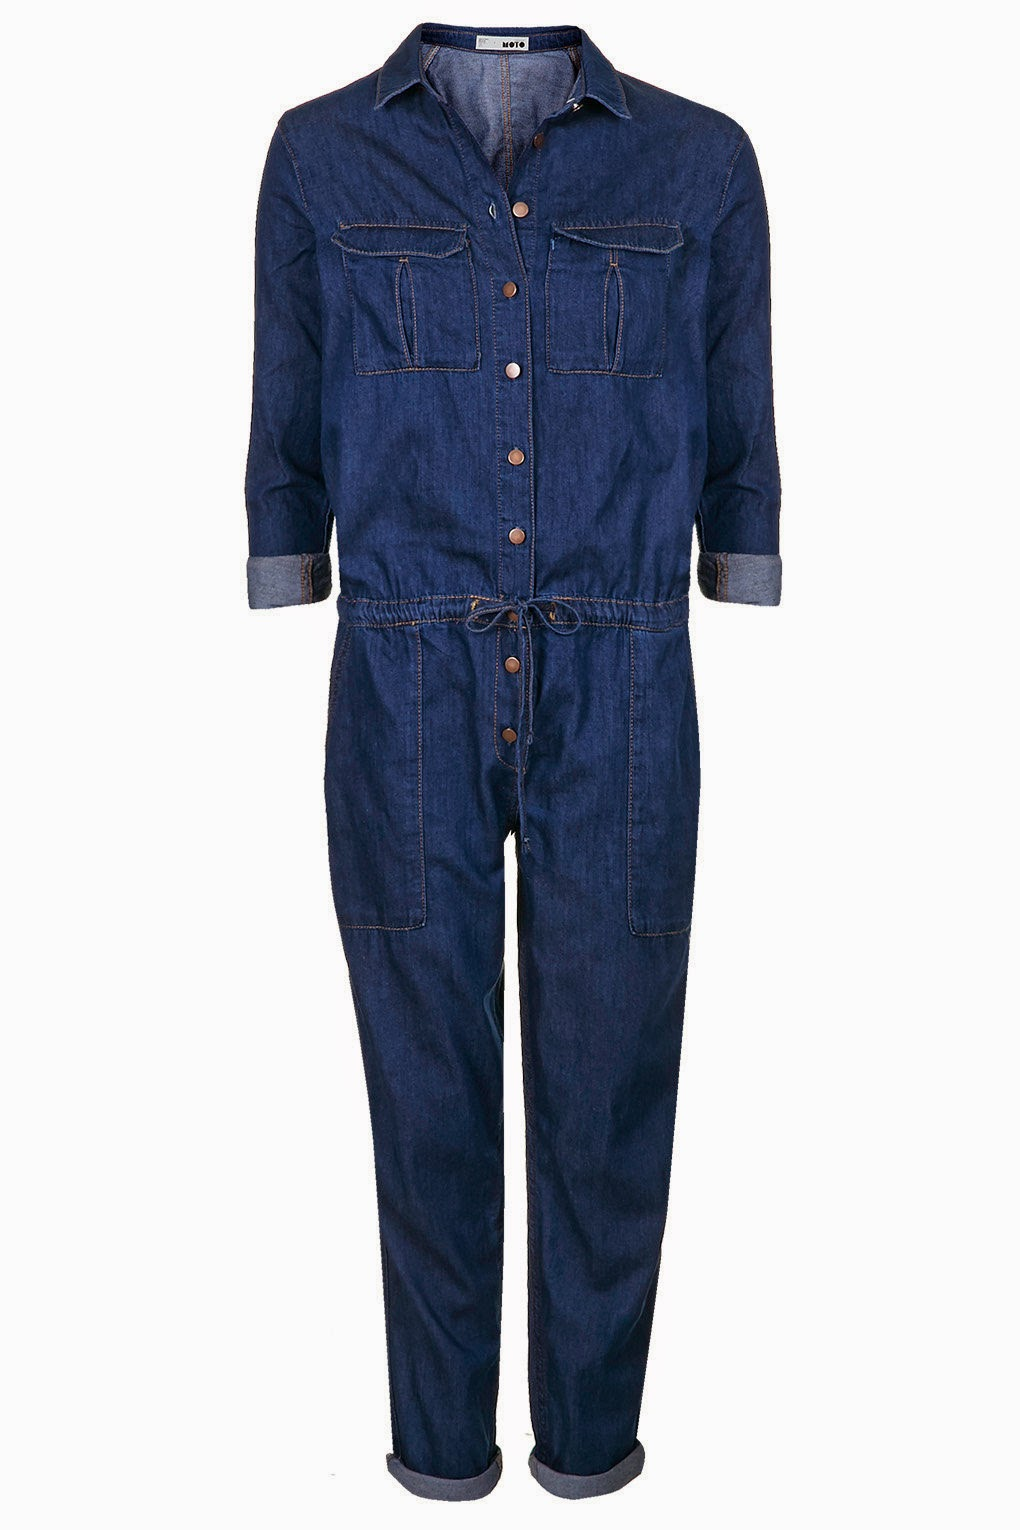 denim boilersuit, topshop denim boilersuit,